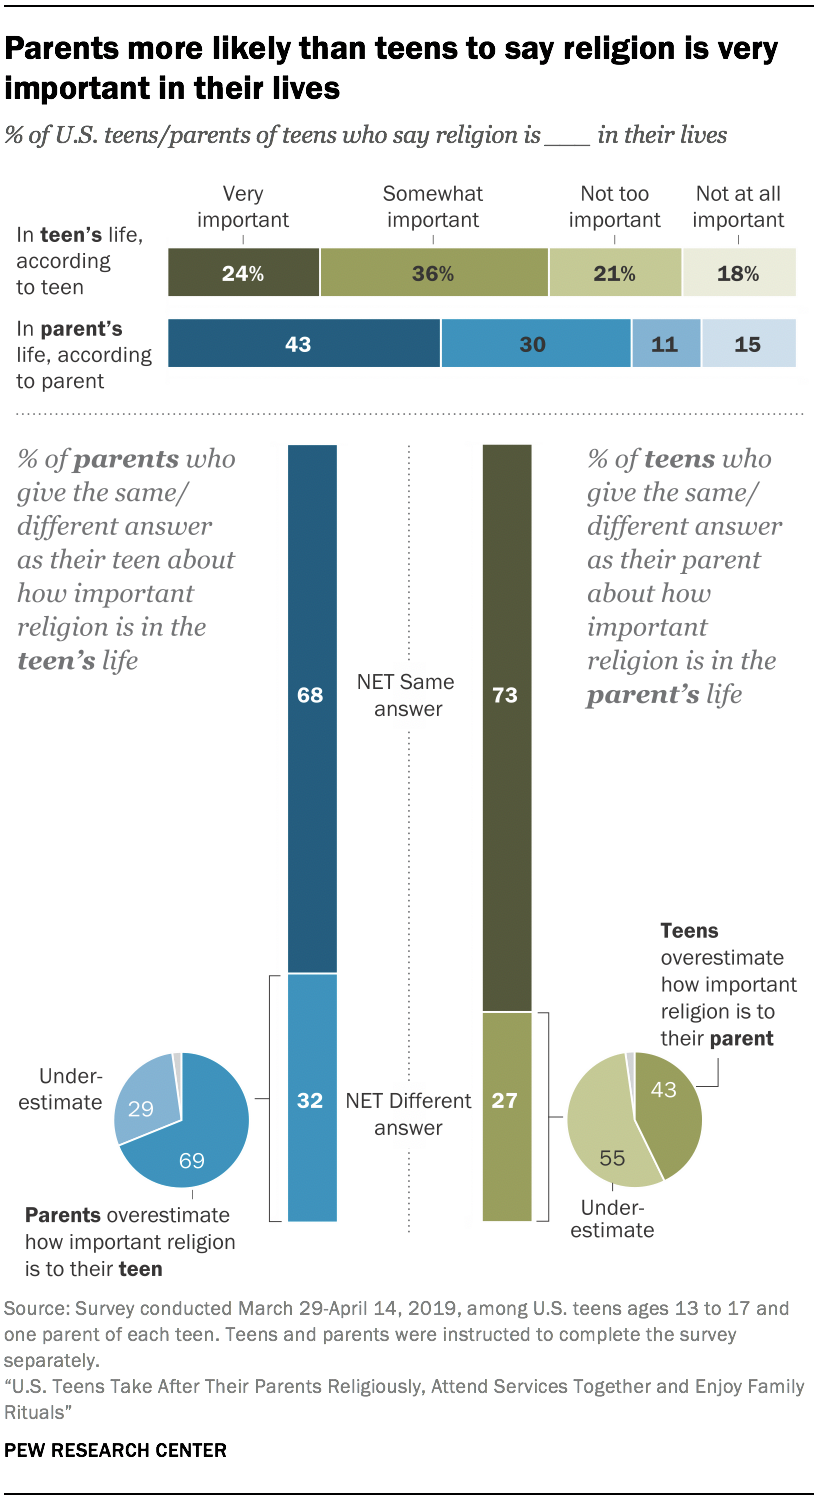 Parents more likely than teens to say religion is very important in their lives